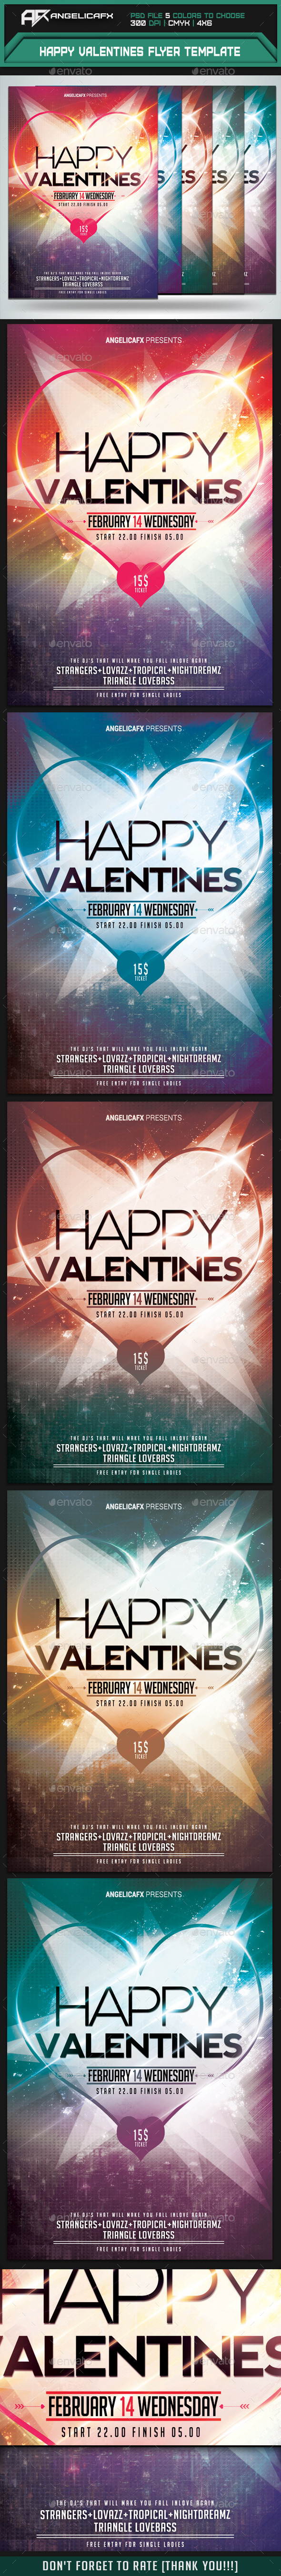 Happy Valentines Flyer Template - Events Flyers